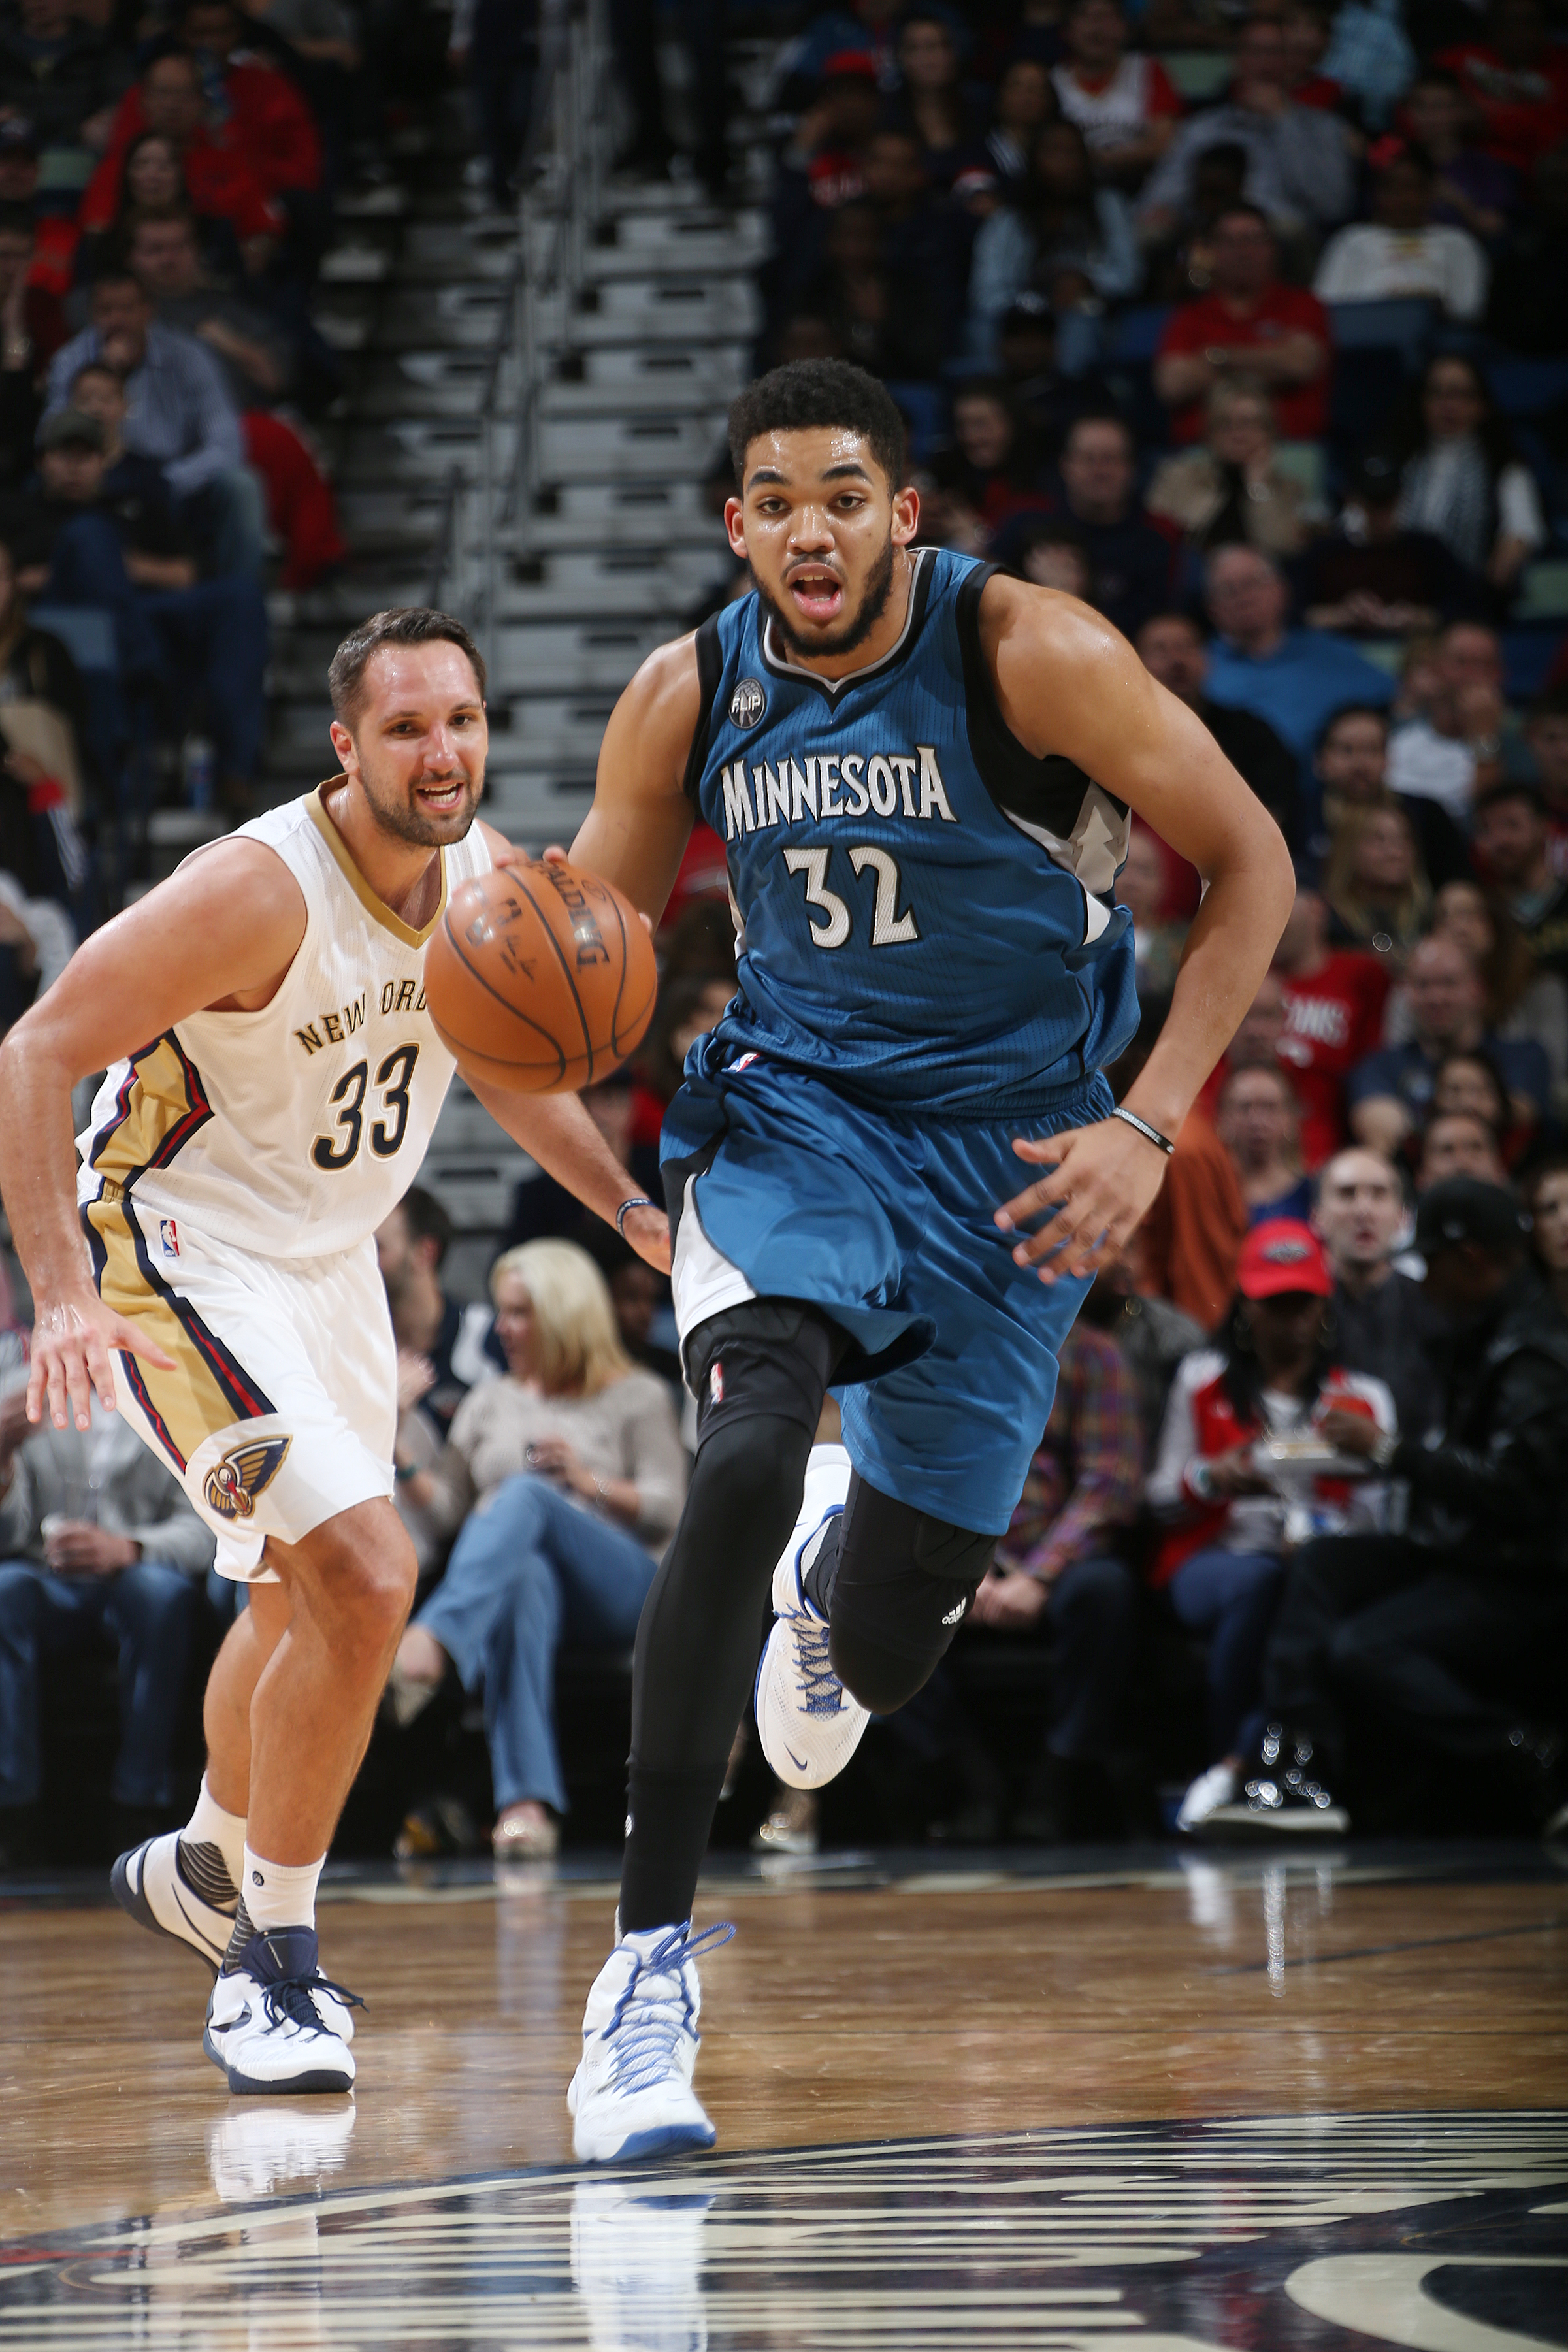 NEW ORLEANS, LA - FEBRUARY 27:  Karl-Anthony Towns #32 of the Minnesota Timberwolves handles the ball against the New Orleans Pelicans on February 27, 2016 at the Smoothie King Center in New Orleans, Louisiana. (Photo by Layne Murdoch Jr./NBAE via Getty I